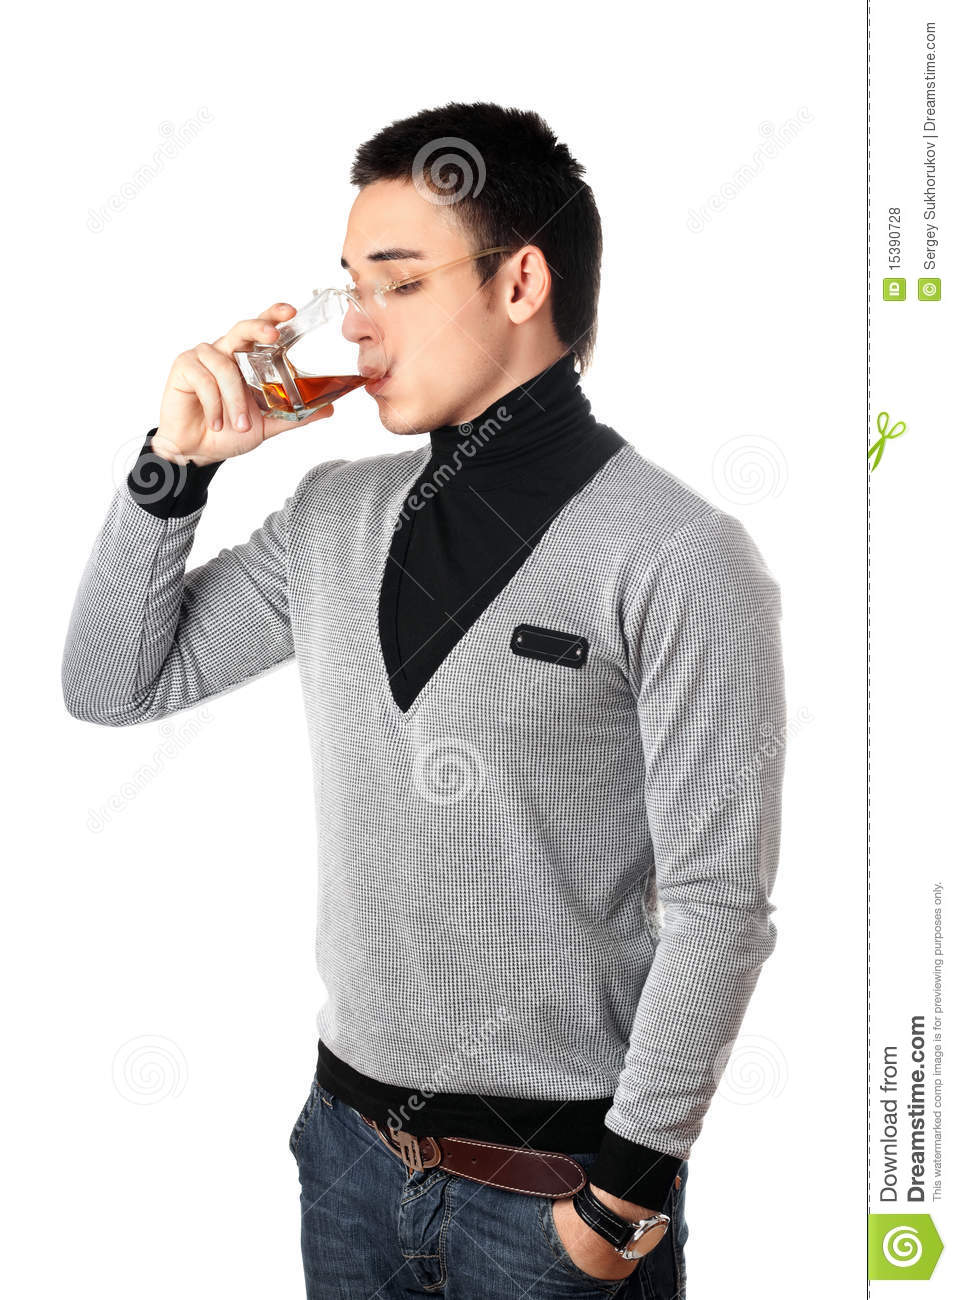 Royalty Free Stock Photos: Young man drinking whiskey